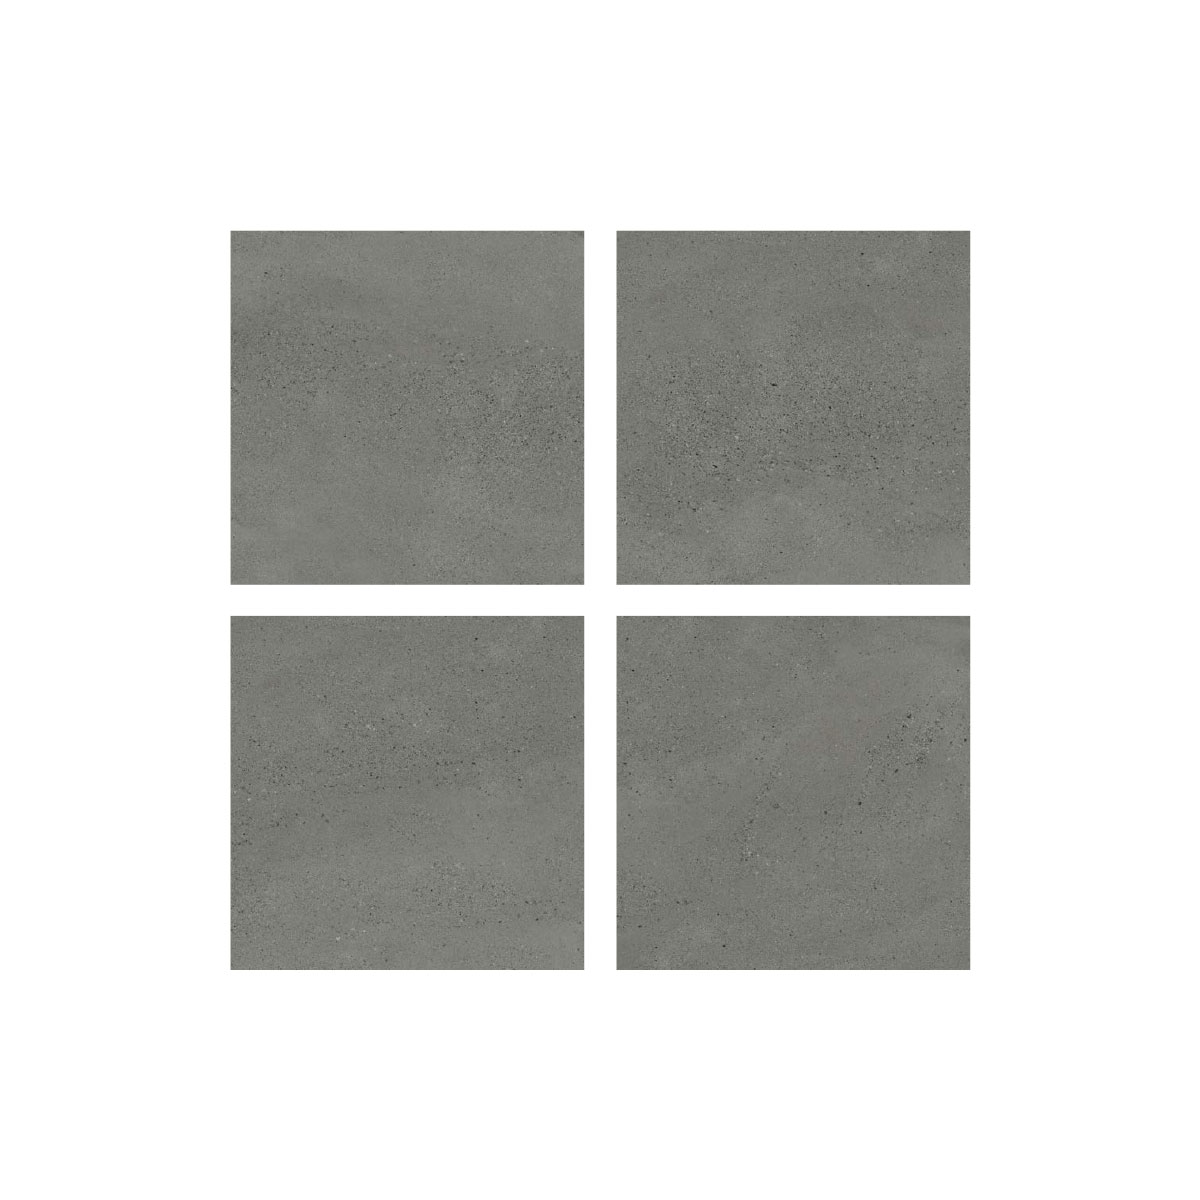 Moonstone - Oyster - Concrete Look Tiles - 600x600mm - Stone3